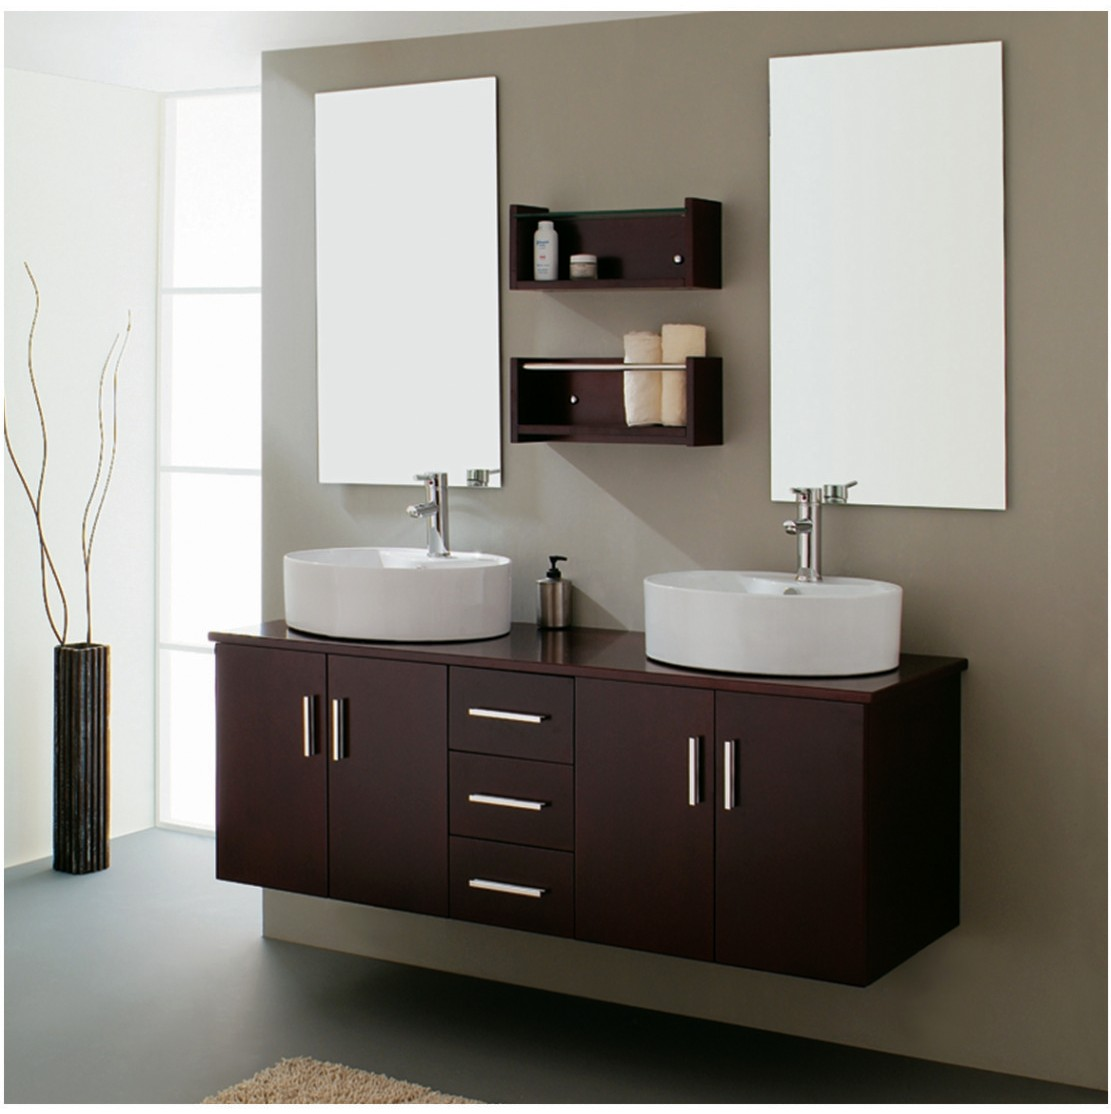 Modern bathroom double sink home decorating ideas for New bathroom design